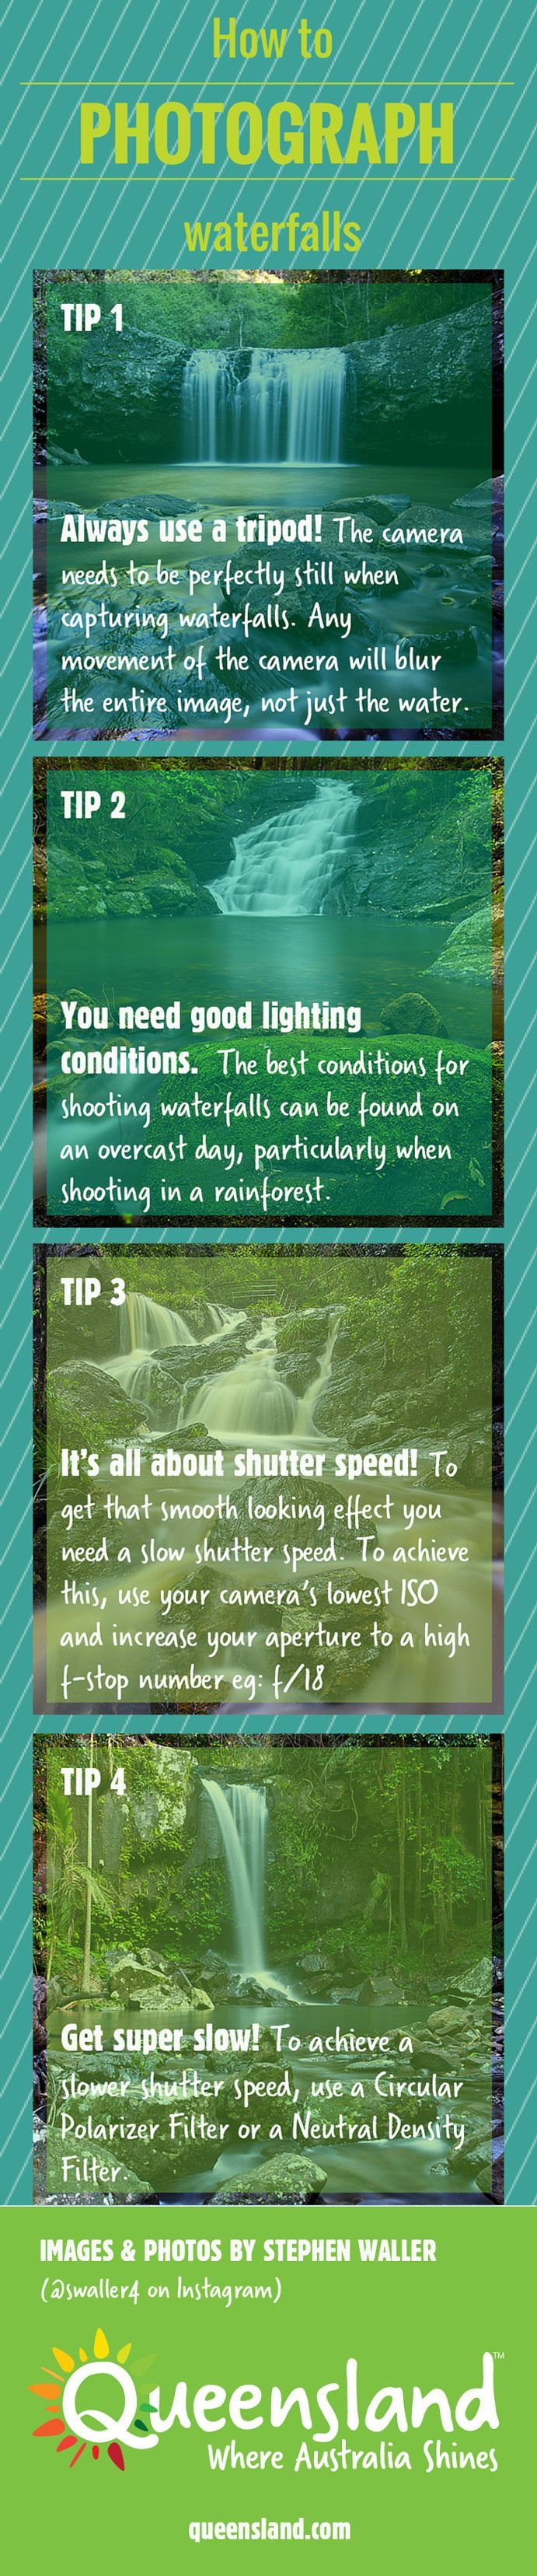 Photography Tips | How to photograph waterfalls INFOGRAPHIC